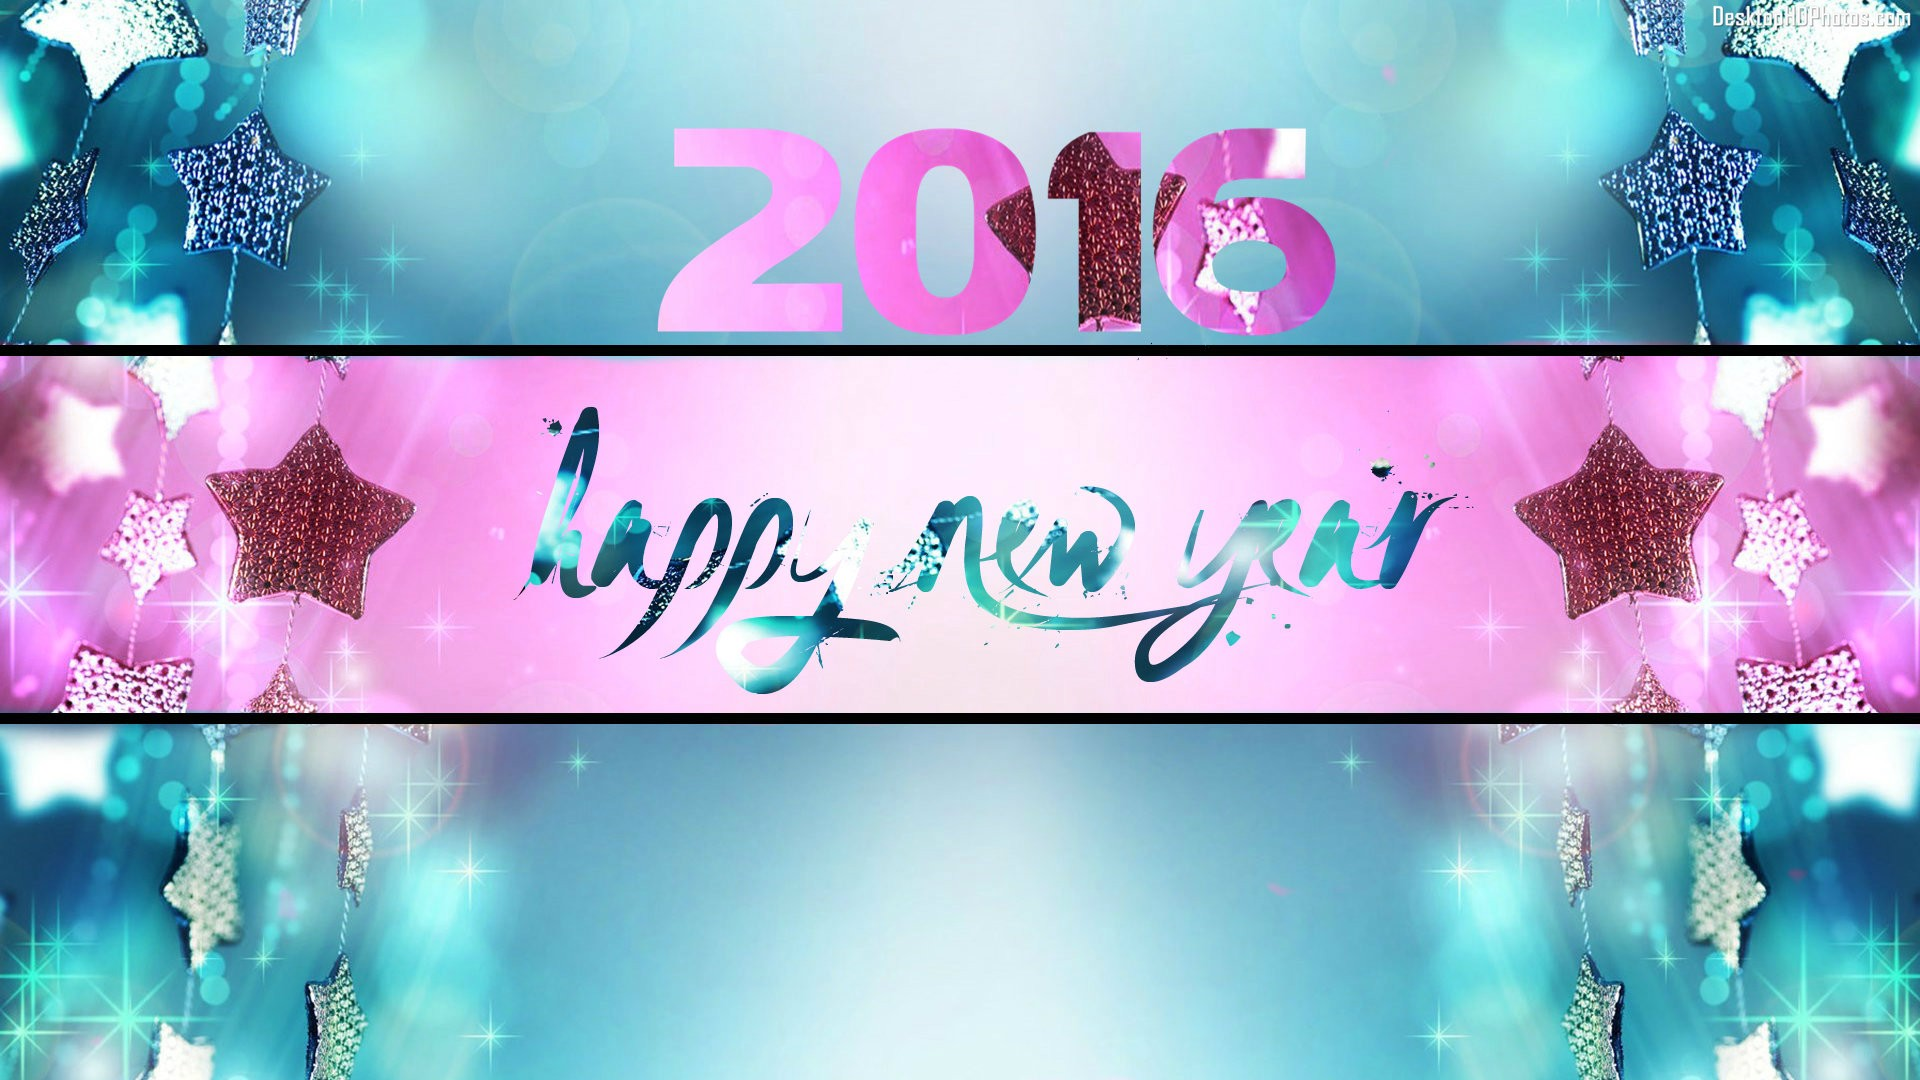 Wallpaper download new year 2016 - Happy New Year 2016 Quotes Wishes Images